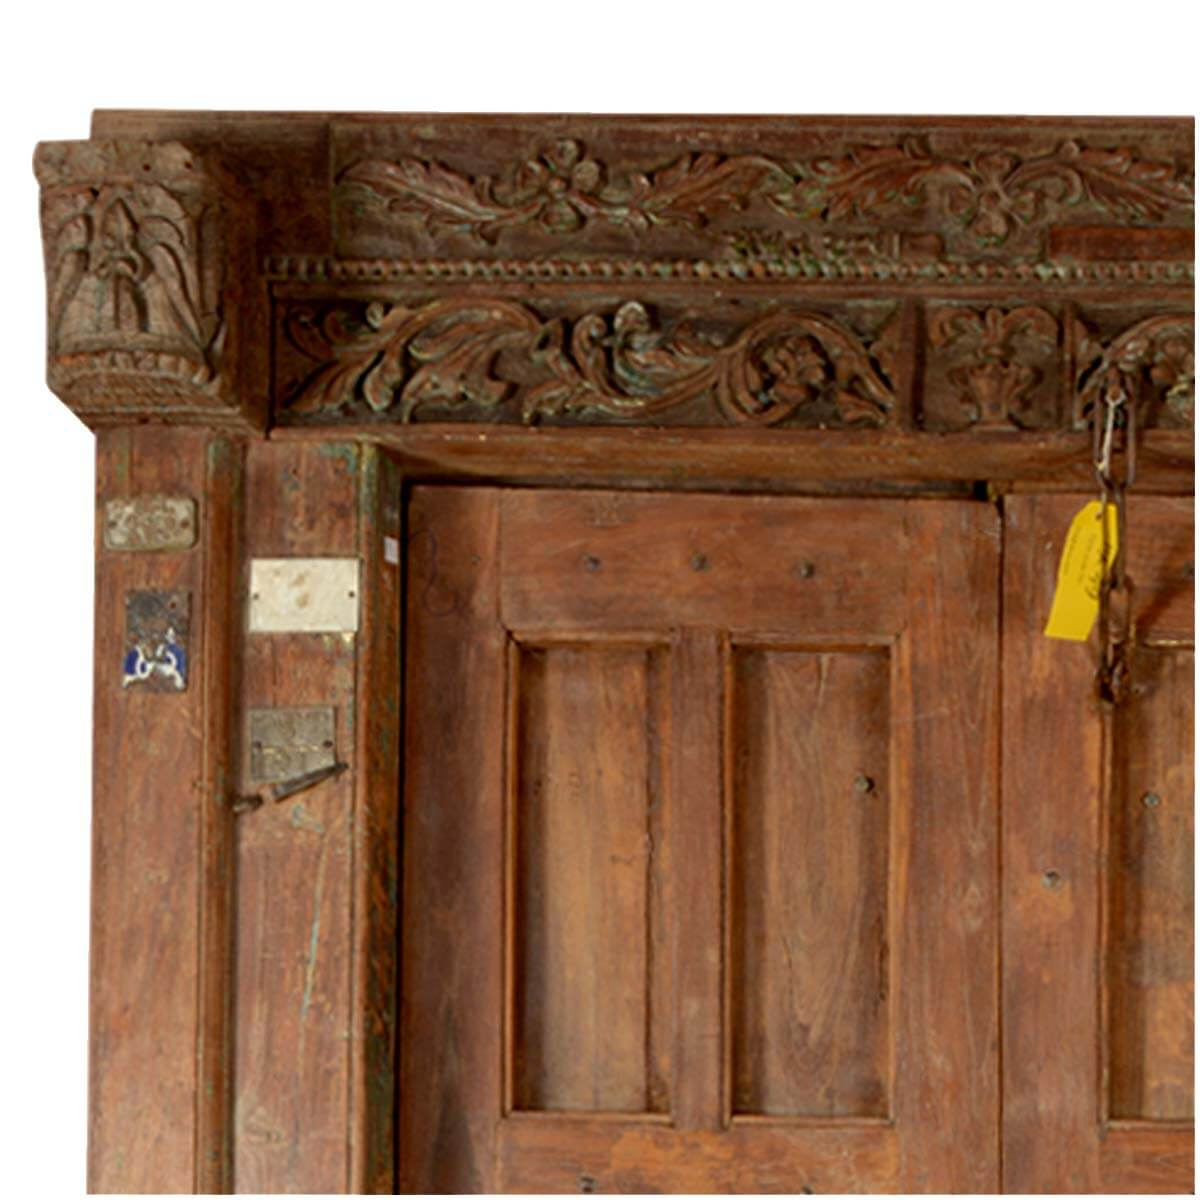 Rustic gothic reclaimed wood hand carved double door frame